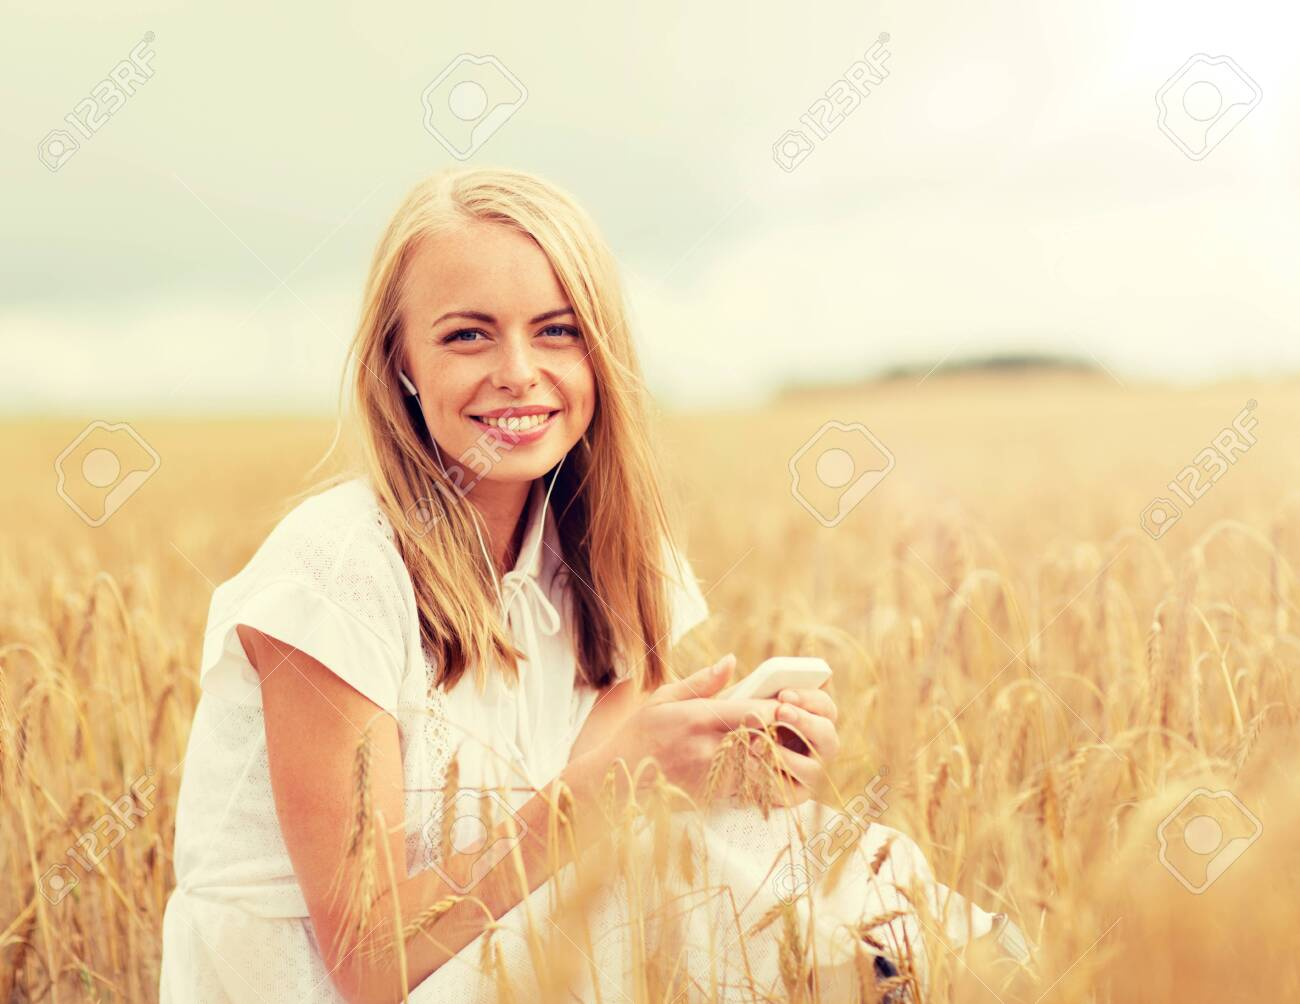 summer holidays, vacation, technology and people concept - smiling young woman in white dress with smartphone and earphones listening to music on cereal field - 133342957